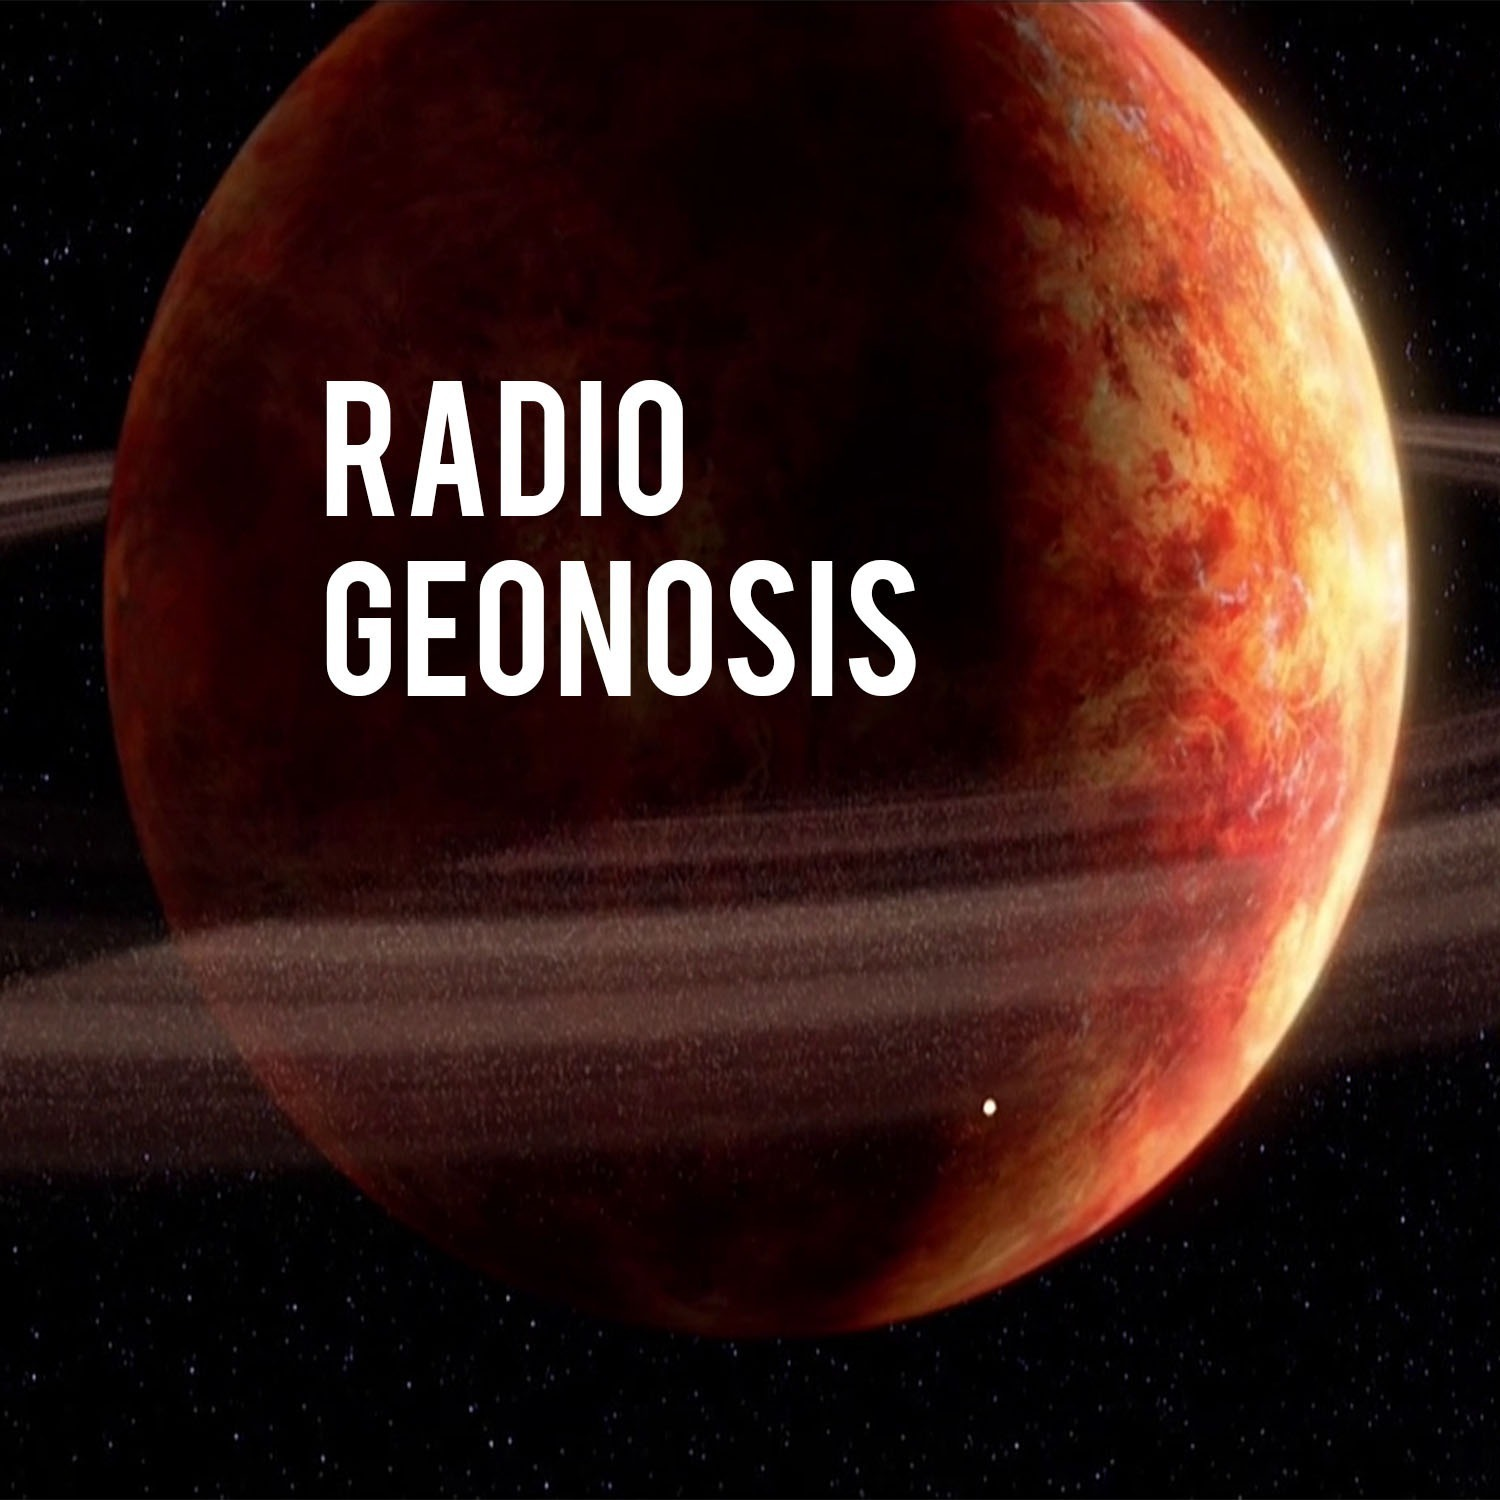 045 - Radio Geonosis Ep. 45 - Fun Facts